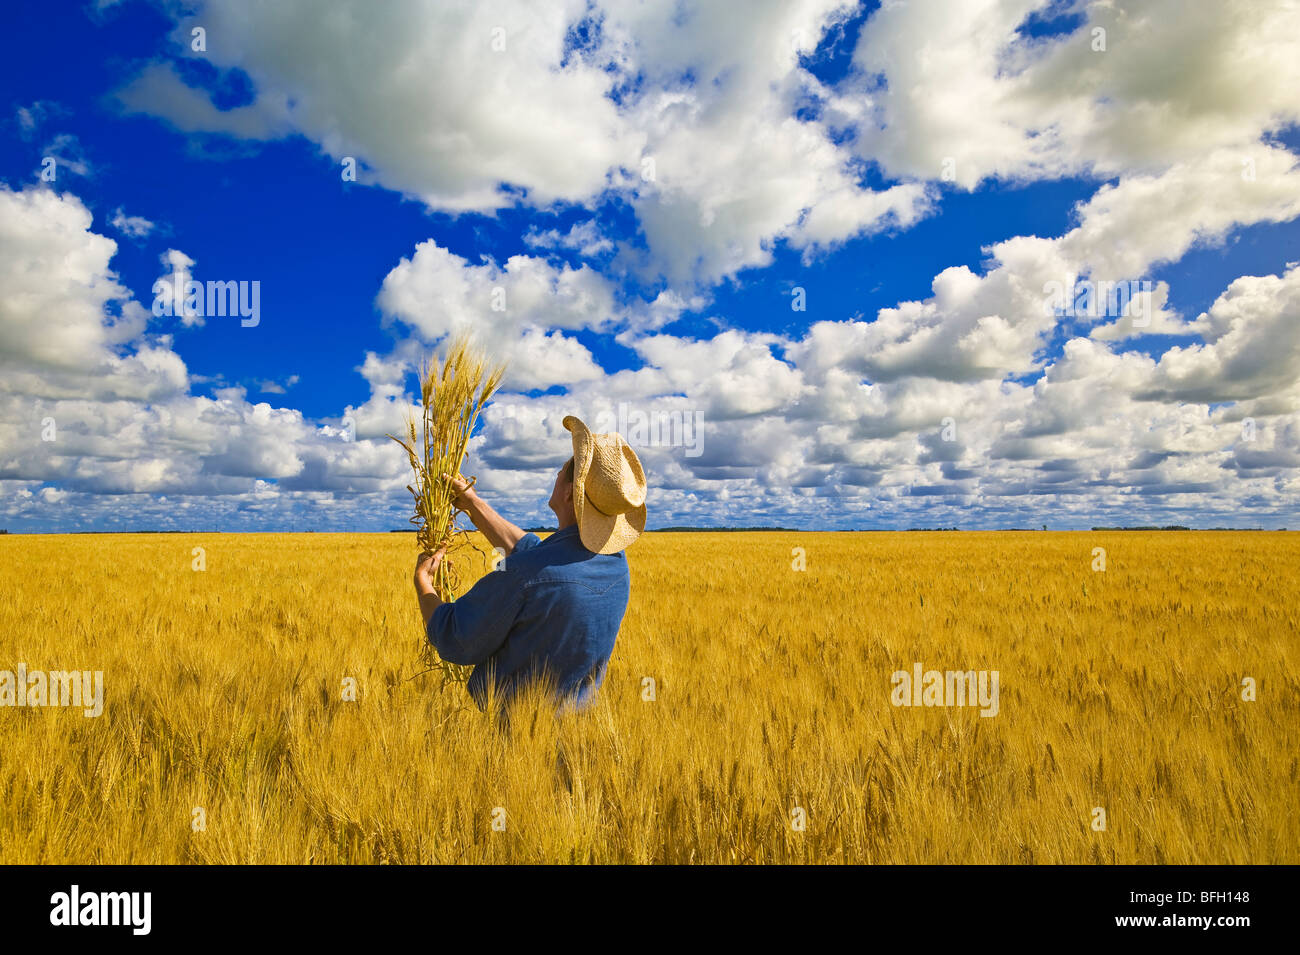 a man examines maturing spring wheat with a sky filled with cumulus clouds in the background, near Dugald, Manitoba, - Stock Image